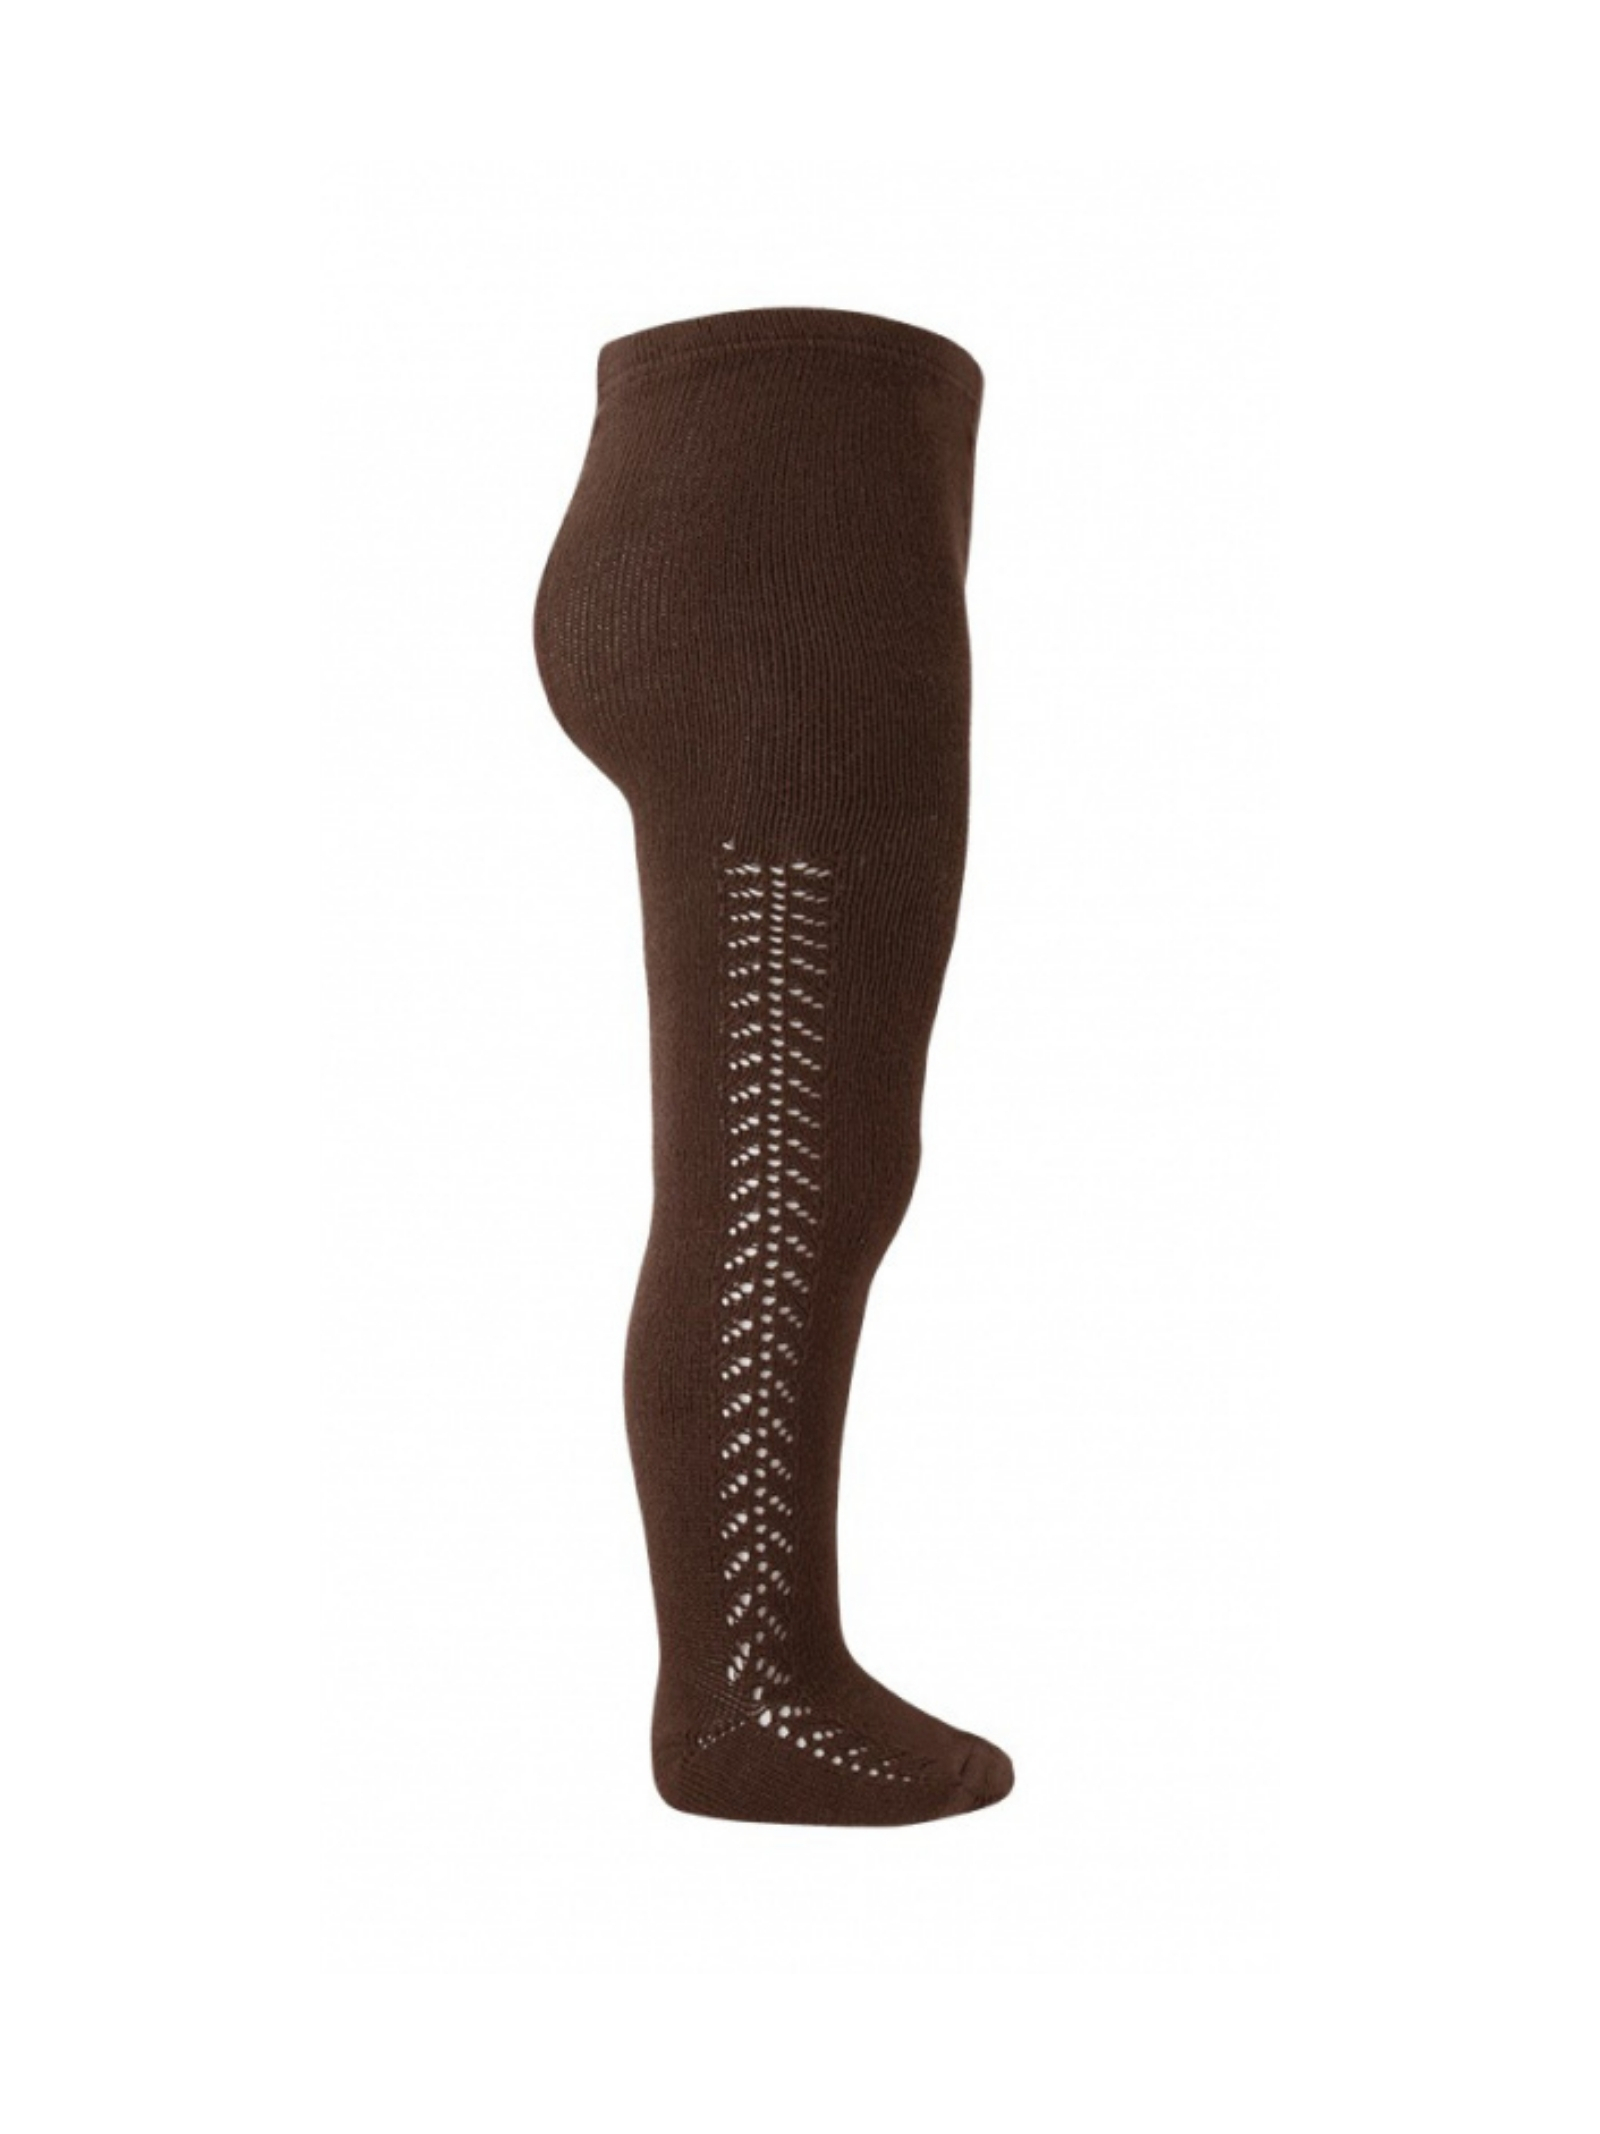 Perforated Tights for Girls CONDOR |  | 25911390